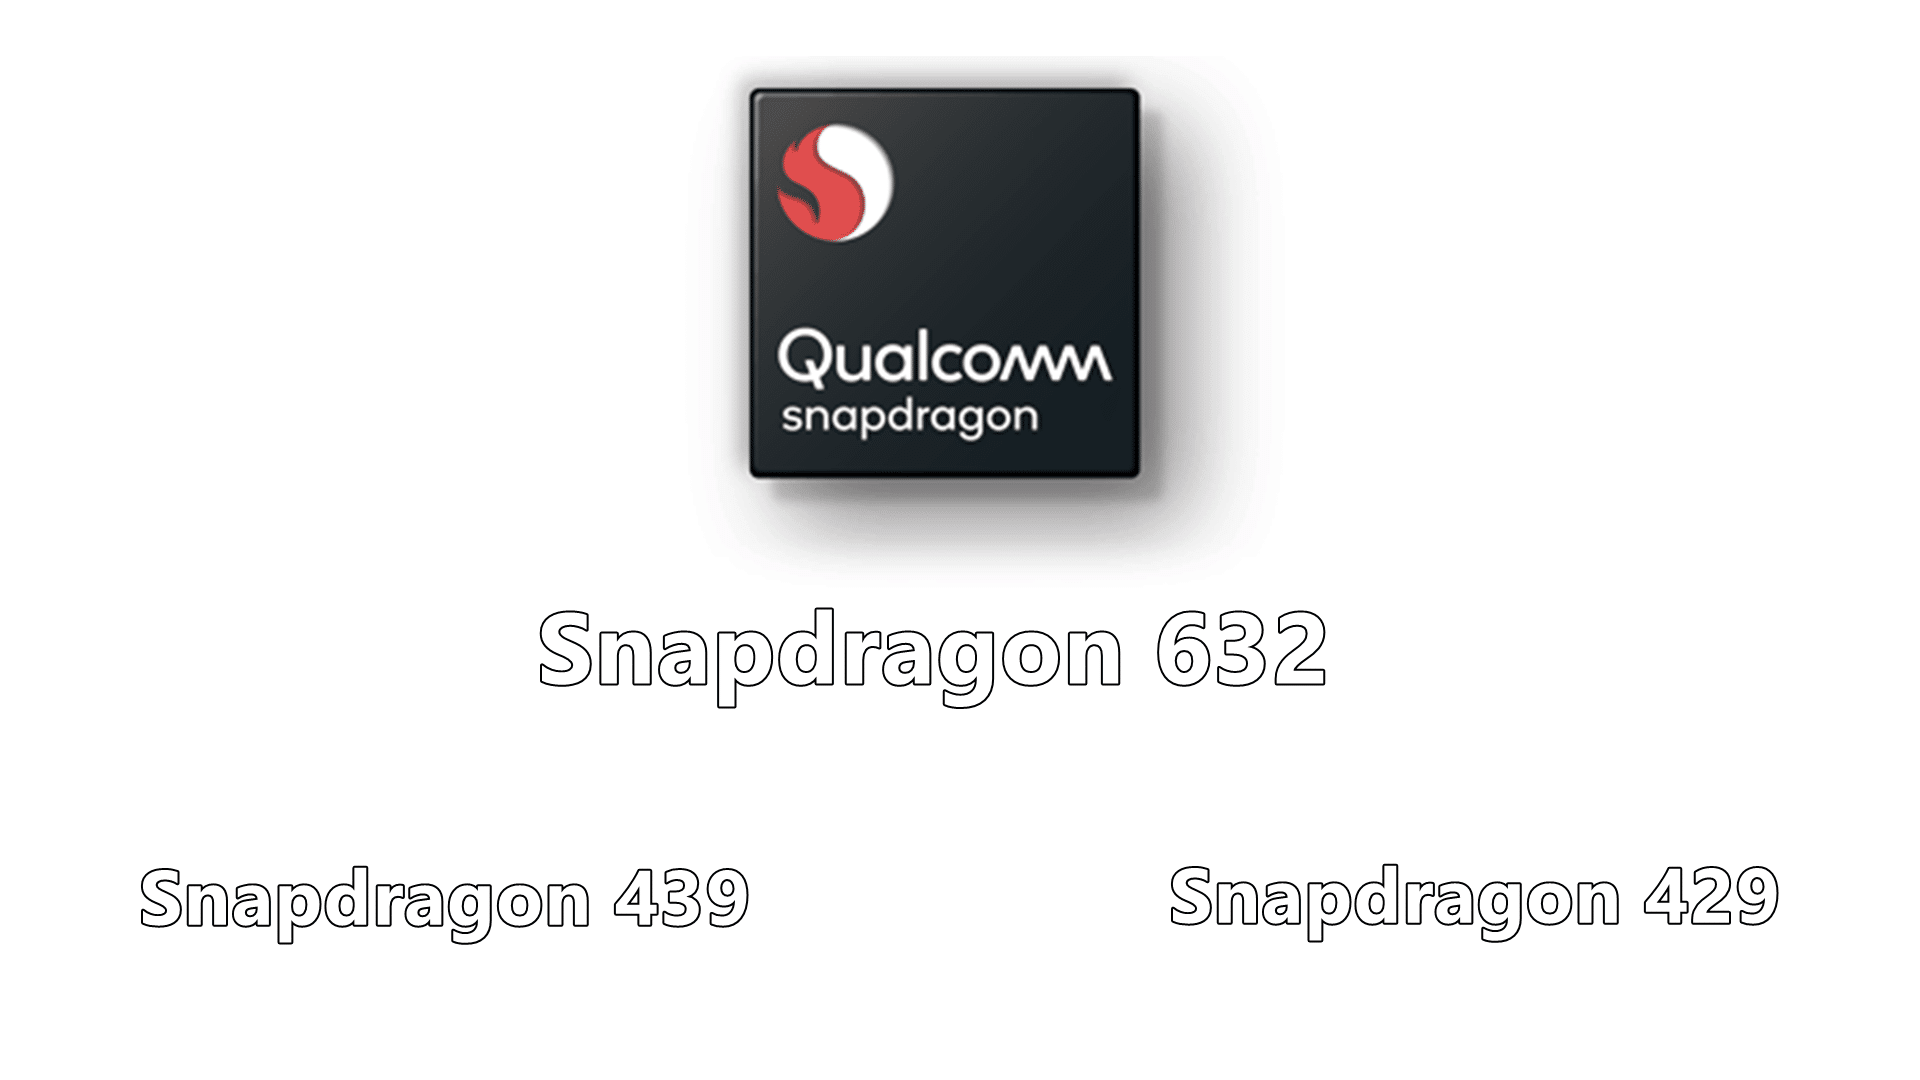 New Snapdragon 632, 439 And 429 SOCs Are Built For Better Budget Smartphones